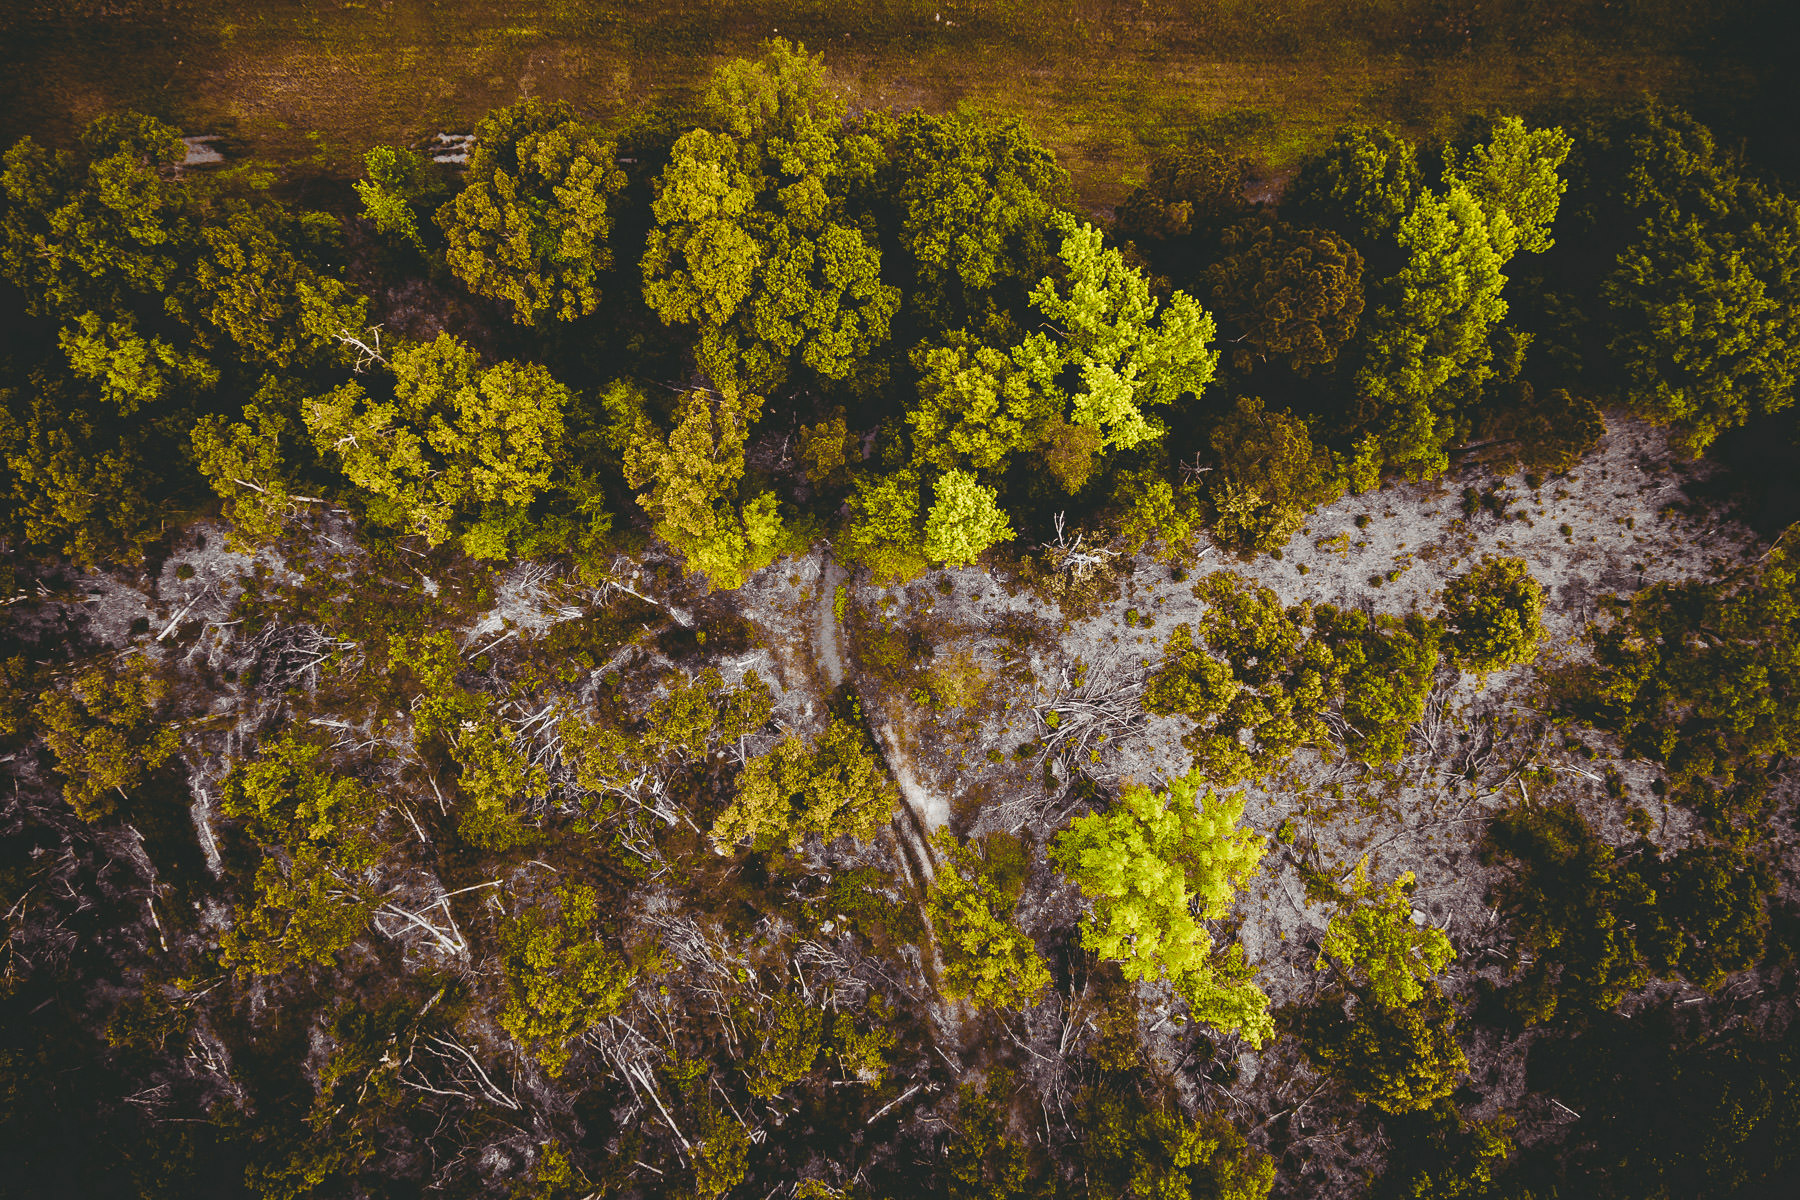 An birds-eye view of the edge of a forest near Lake Tyler in East Texas.